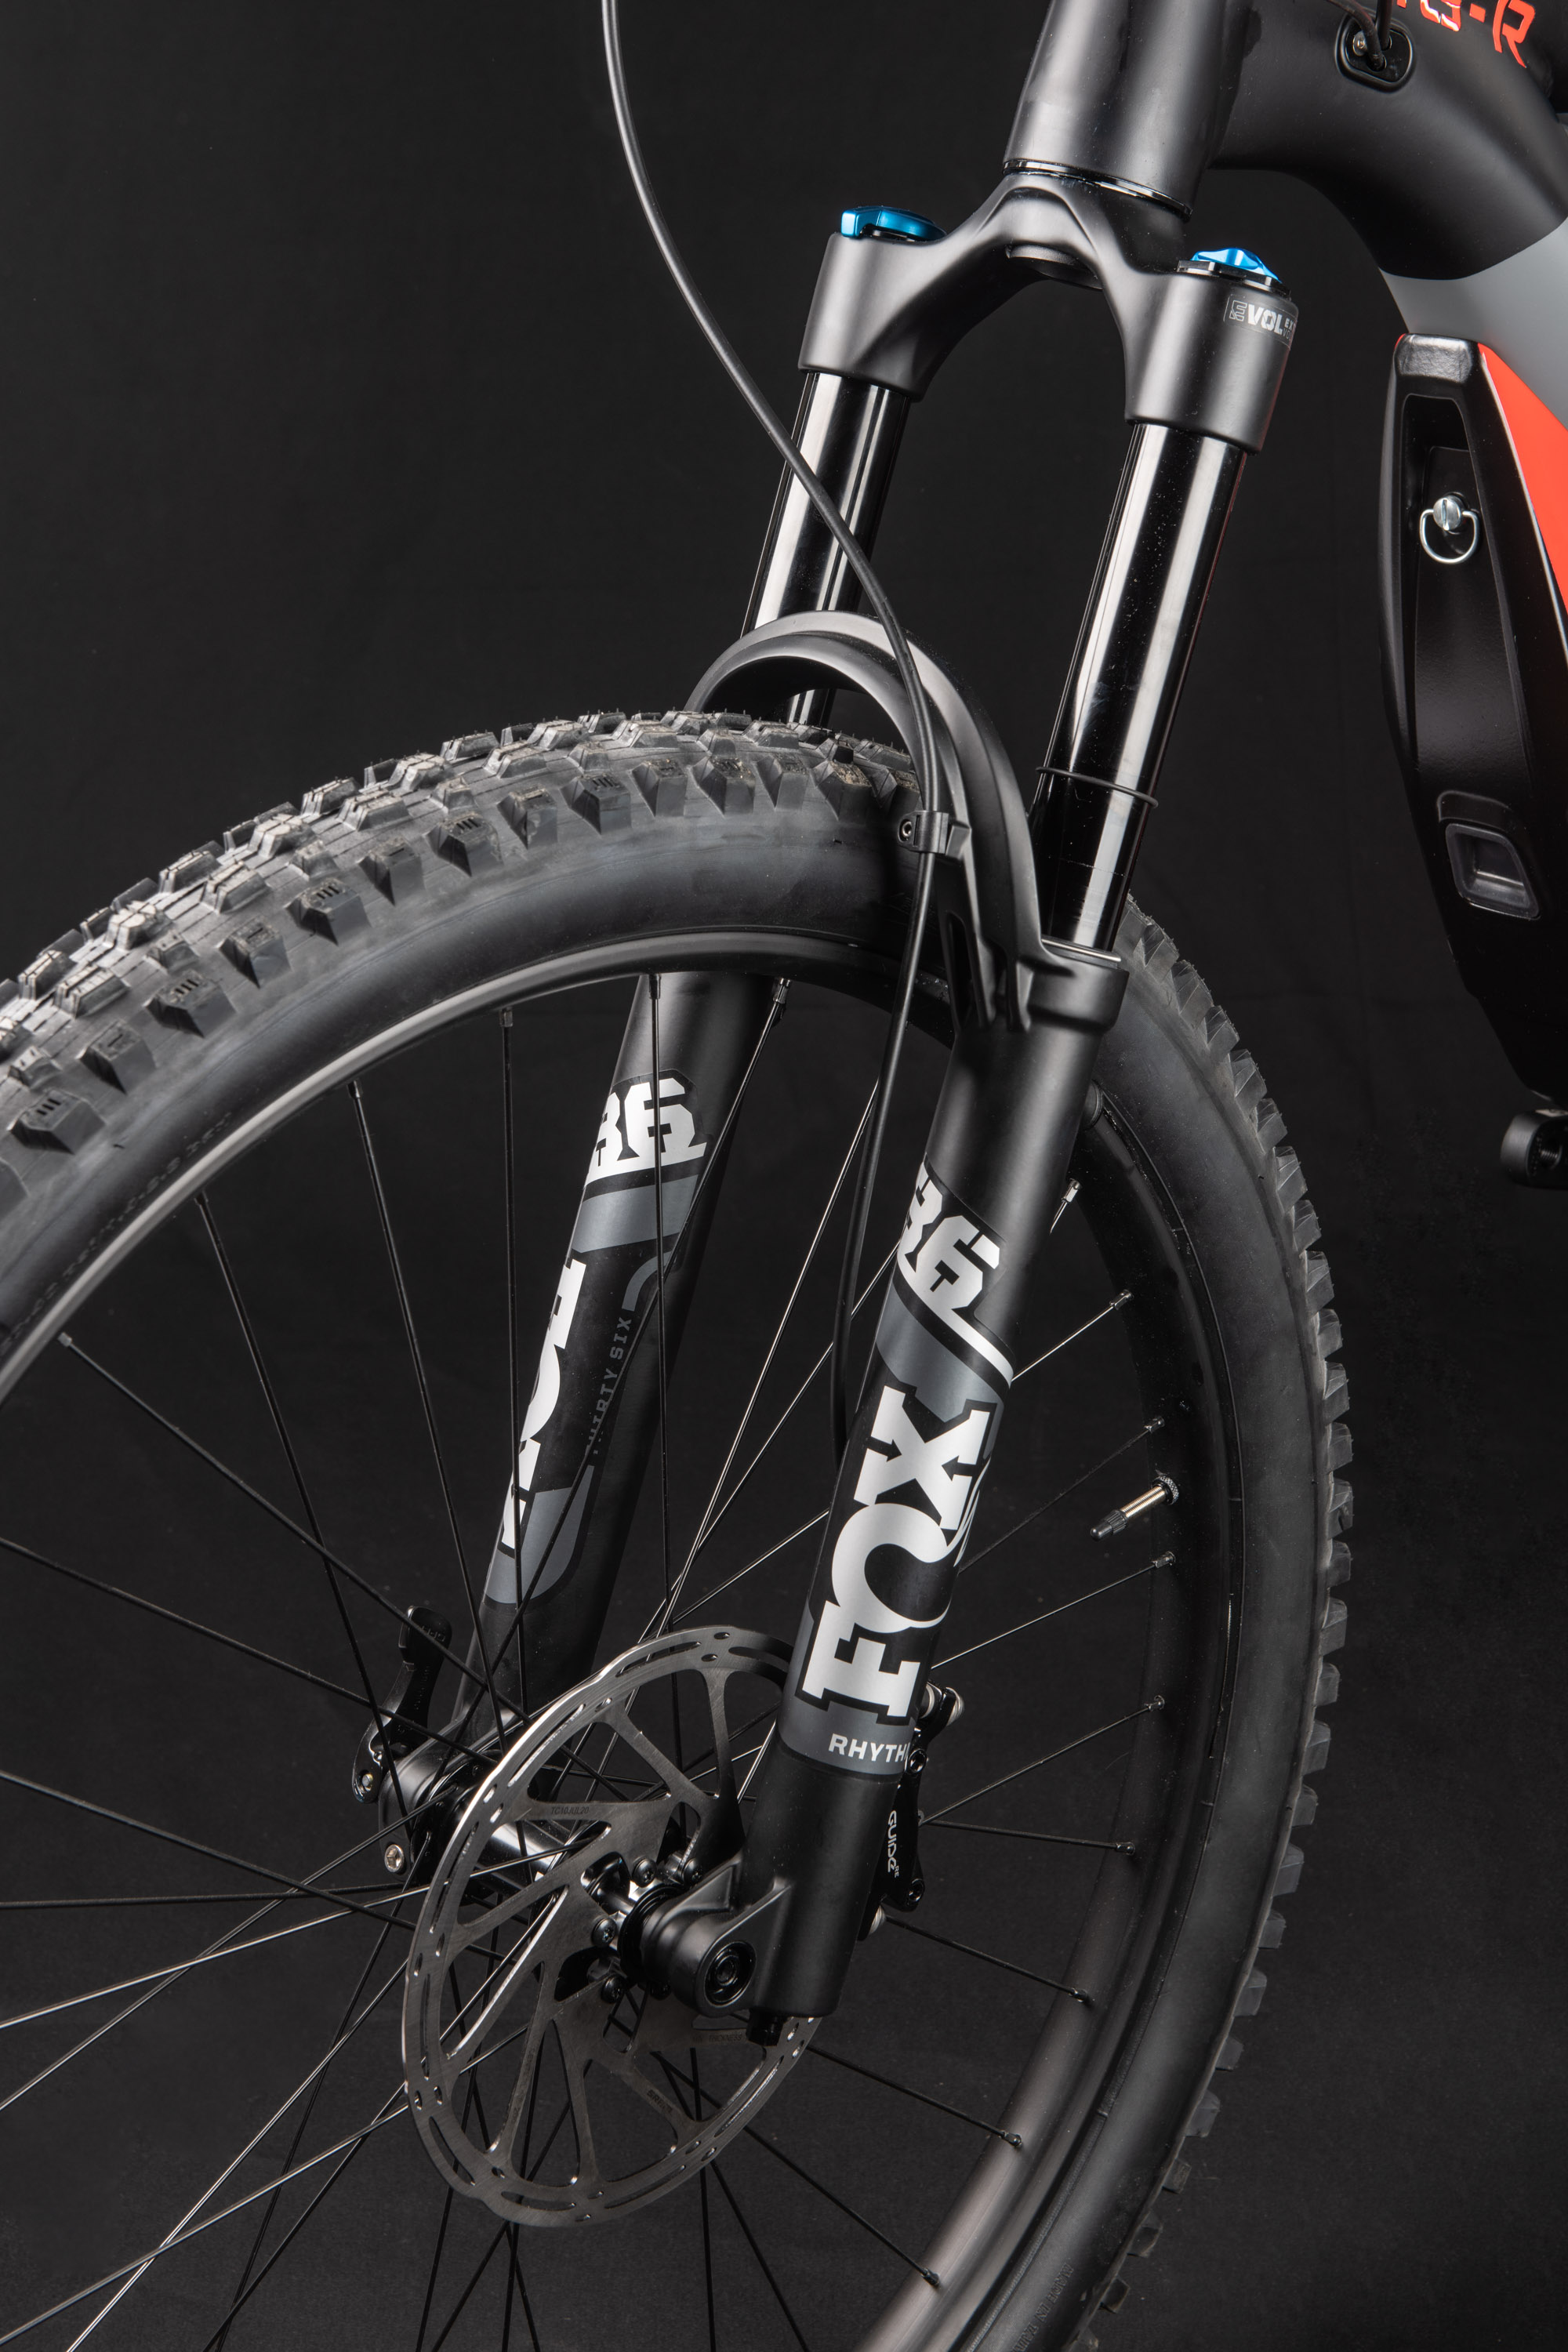 Suspension system designed for e-bikes.